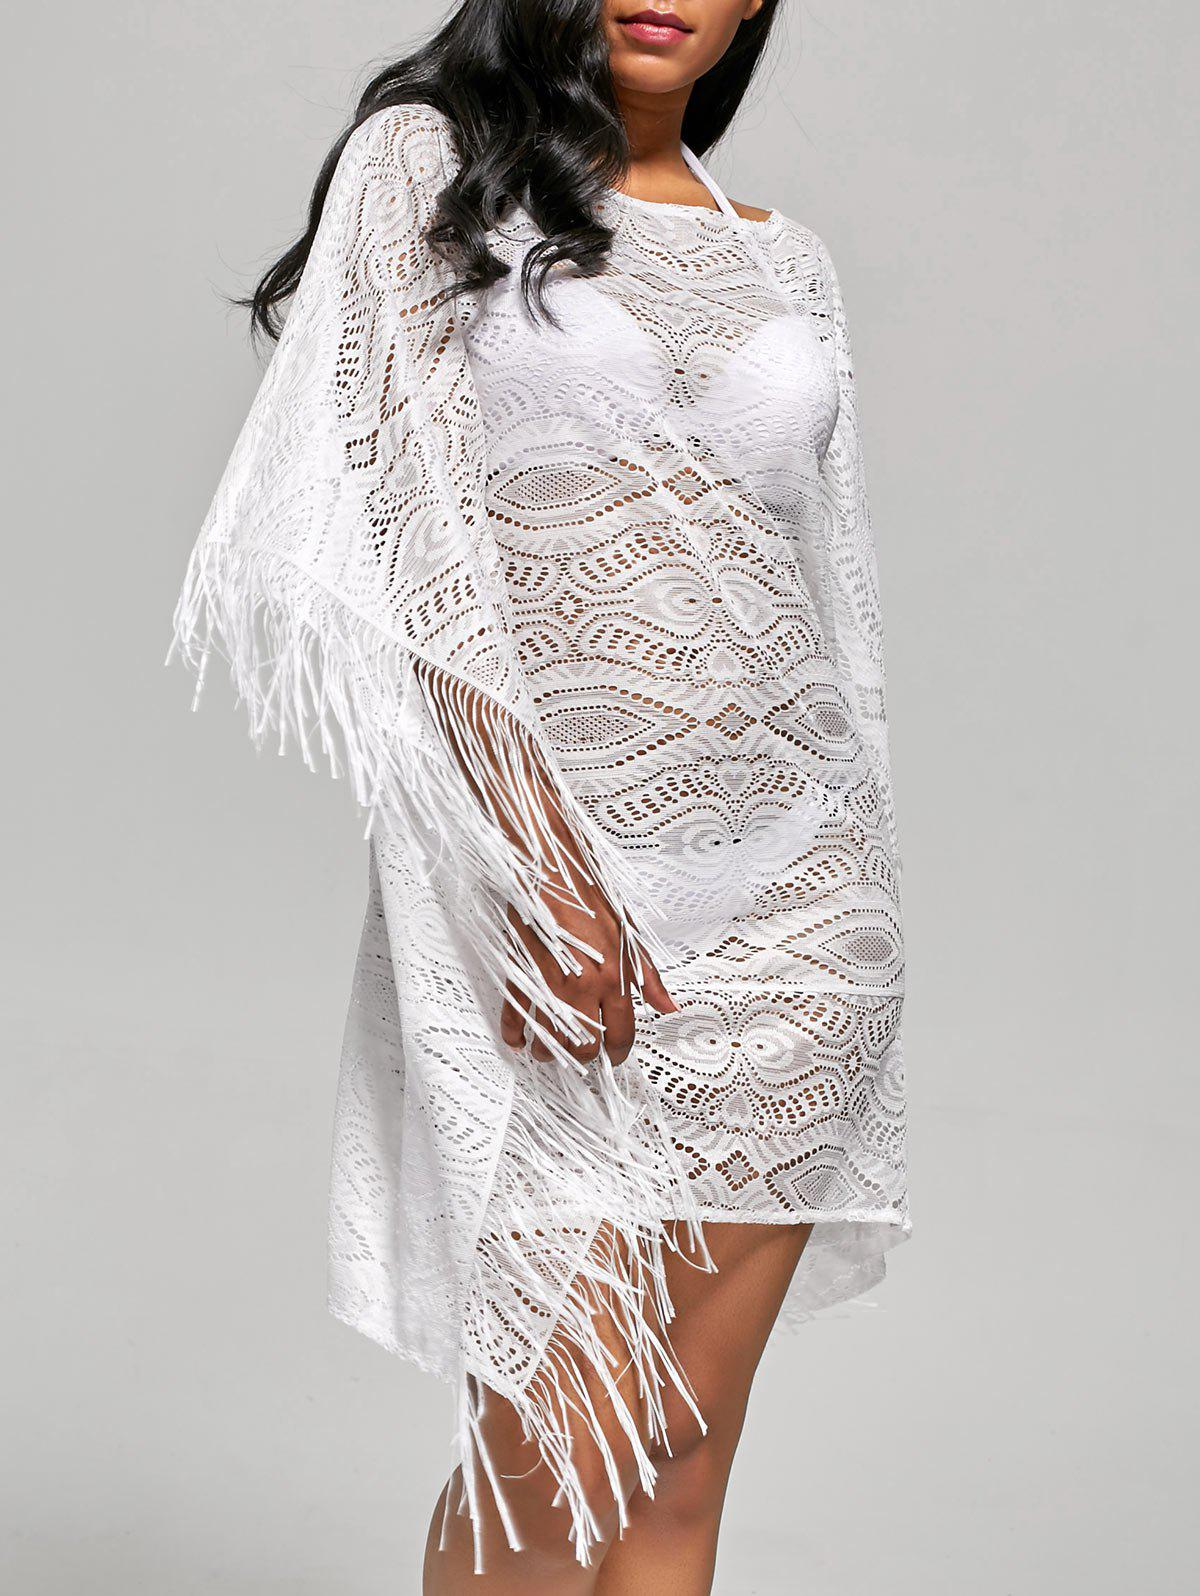 Fringed Cover Up Dress with Batwing Sleeve - WHITE XL